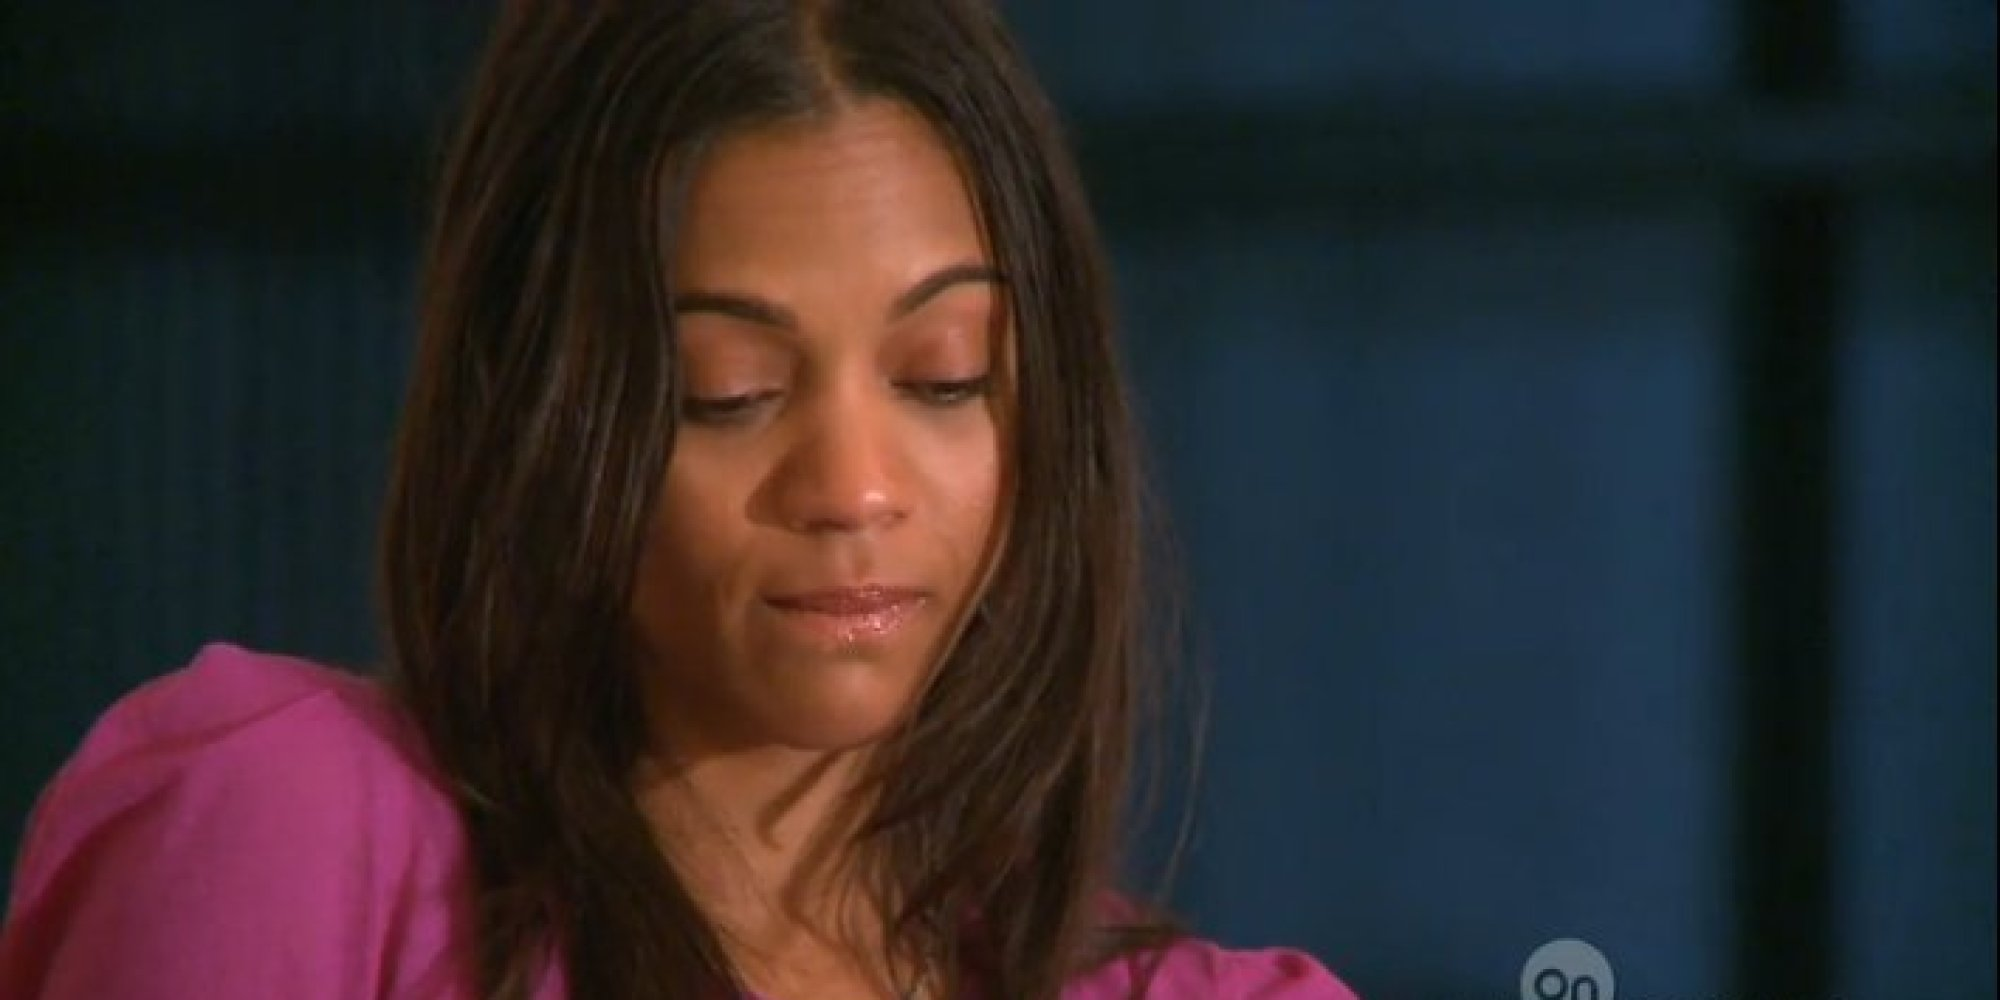 Zoe Saldana Opens Up About Her Family Tragedy | The Huffington Post